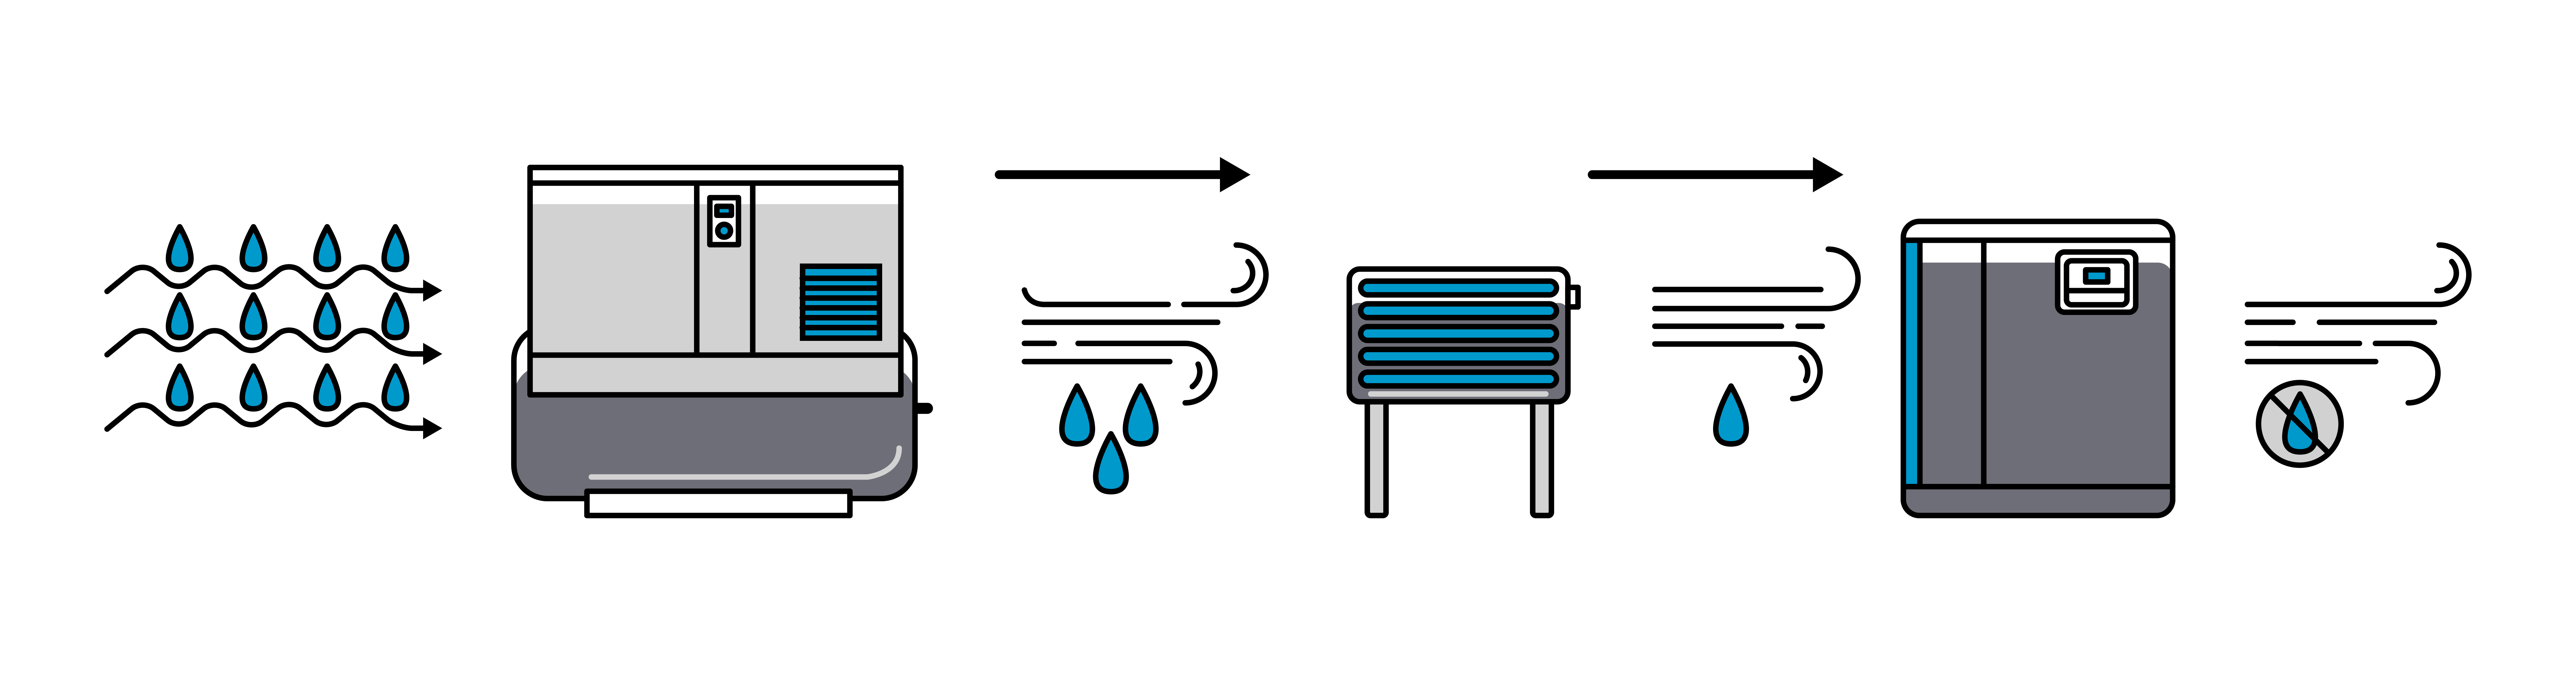 air pressure schematic